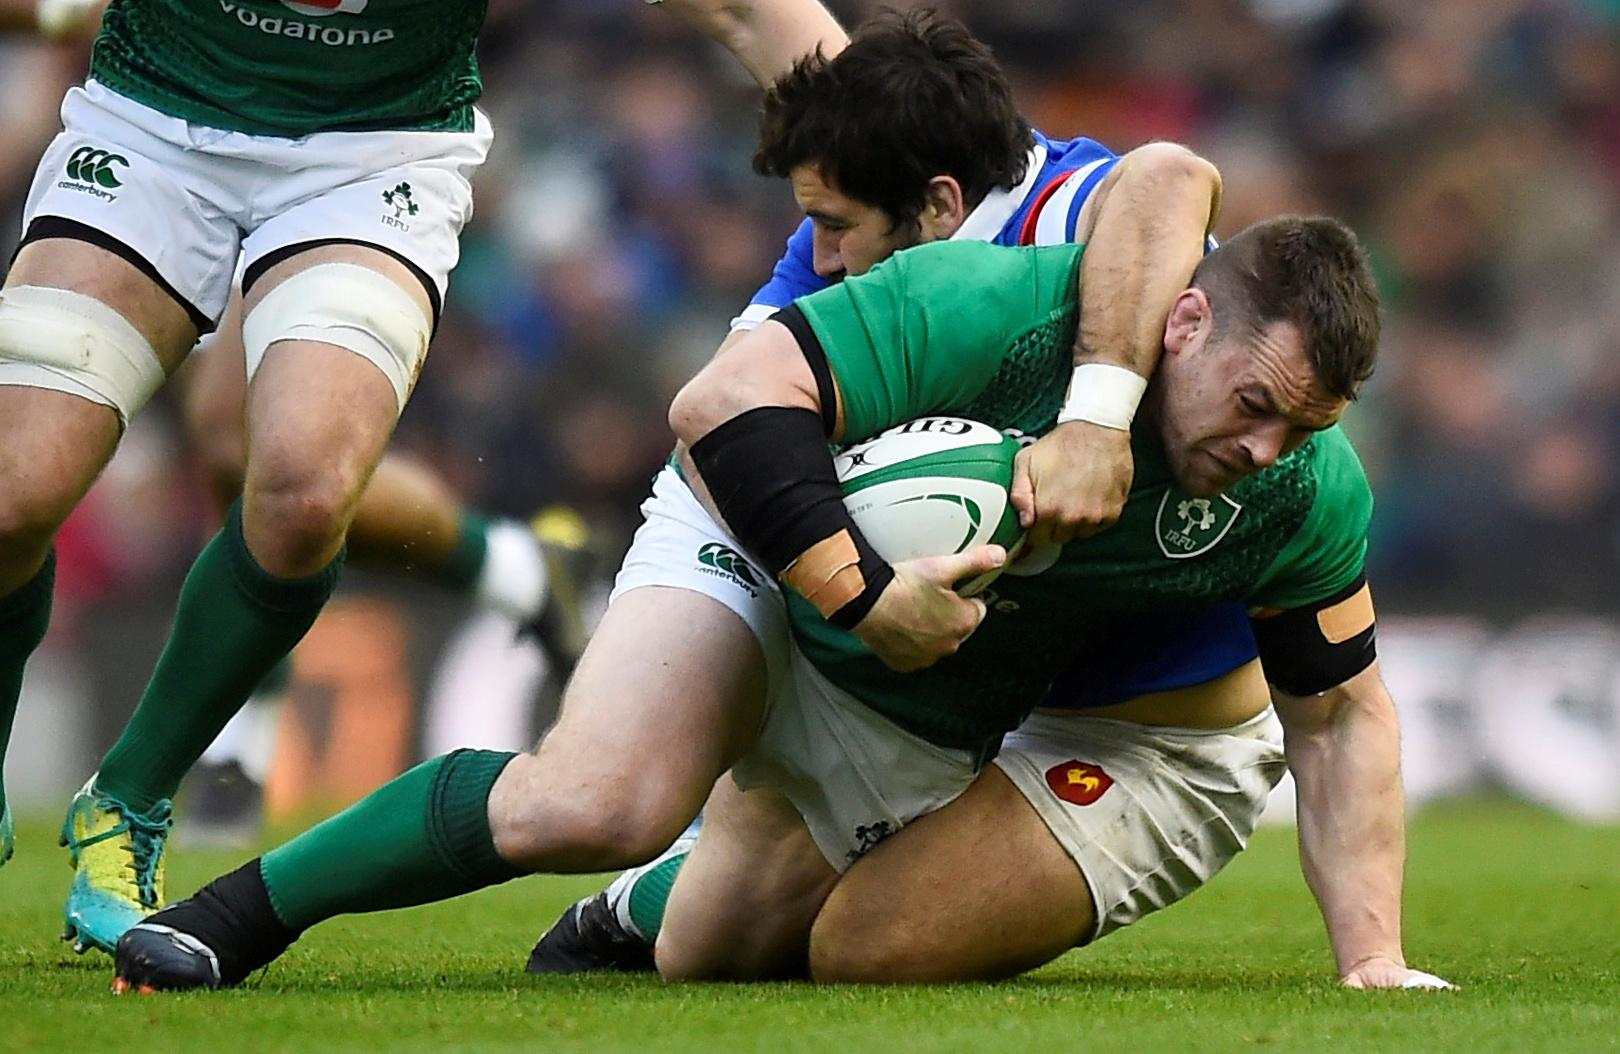 Irish prop Healy relishes Japanese sumo tips